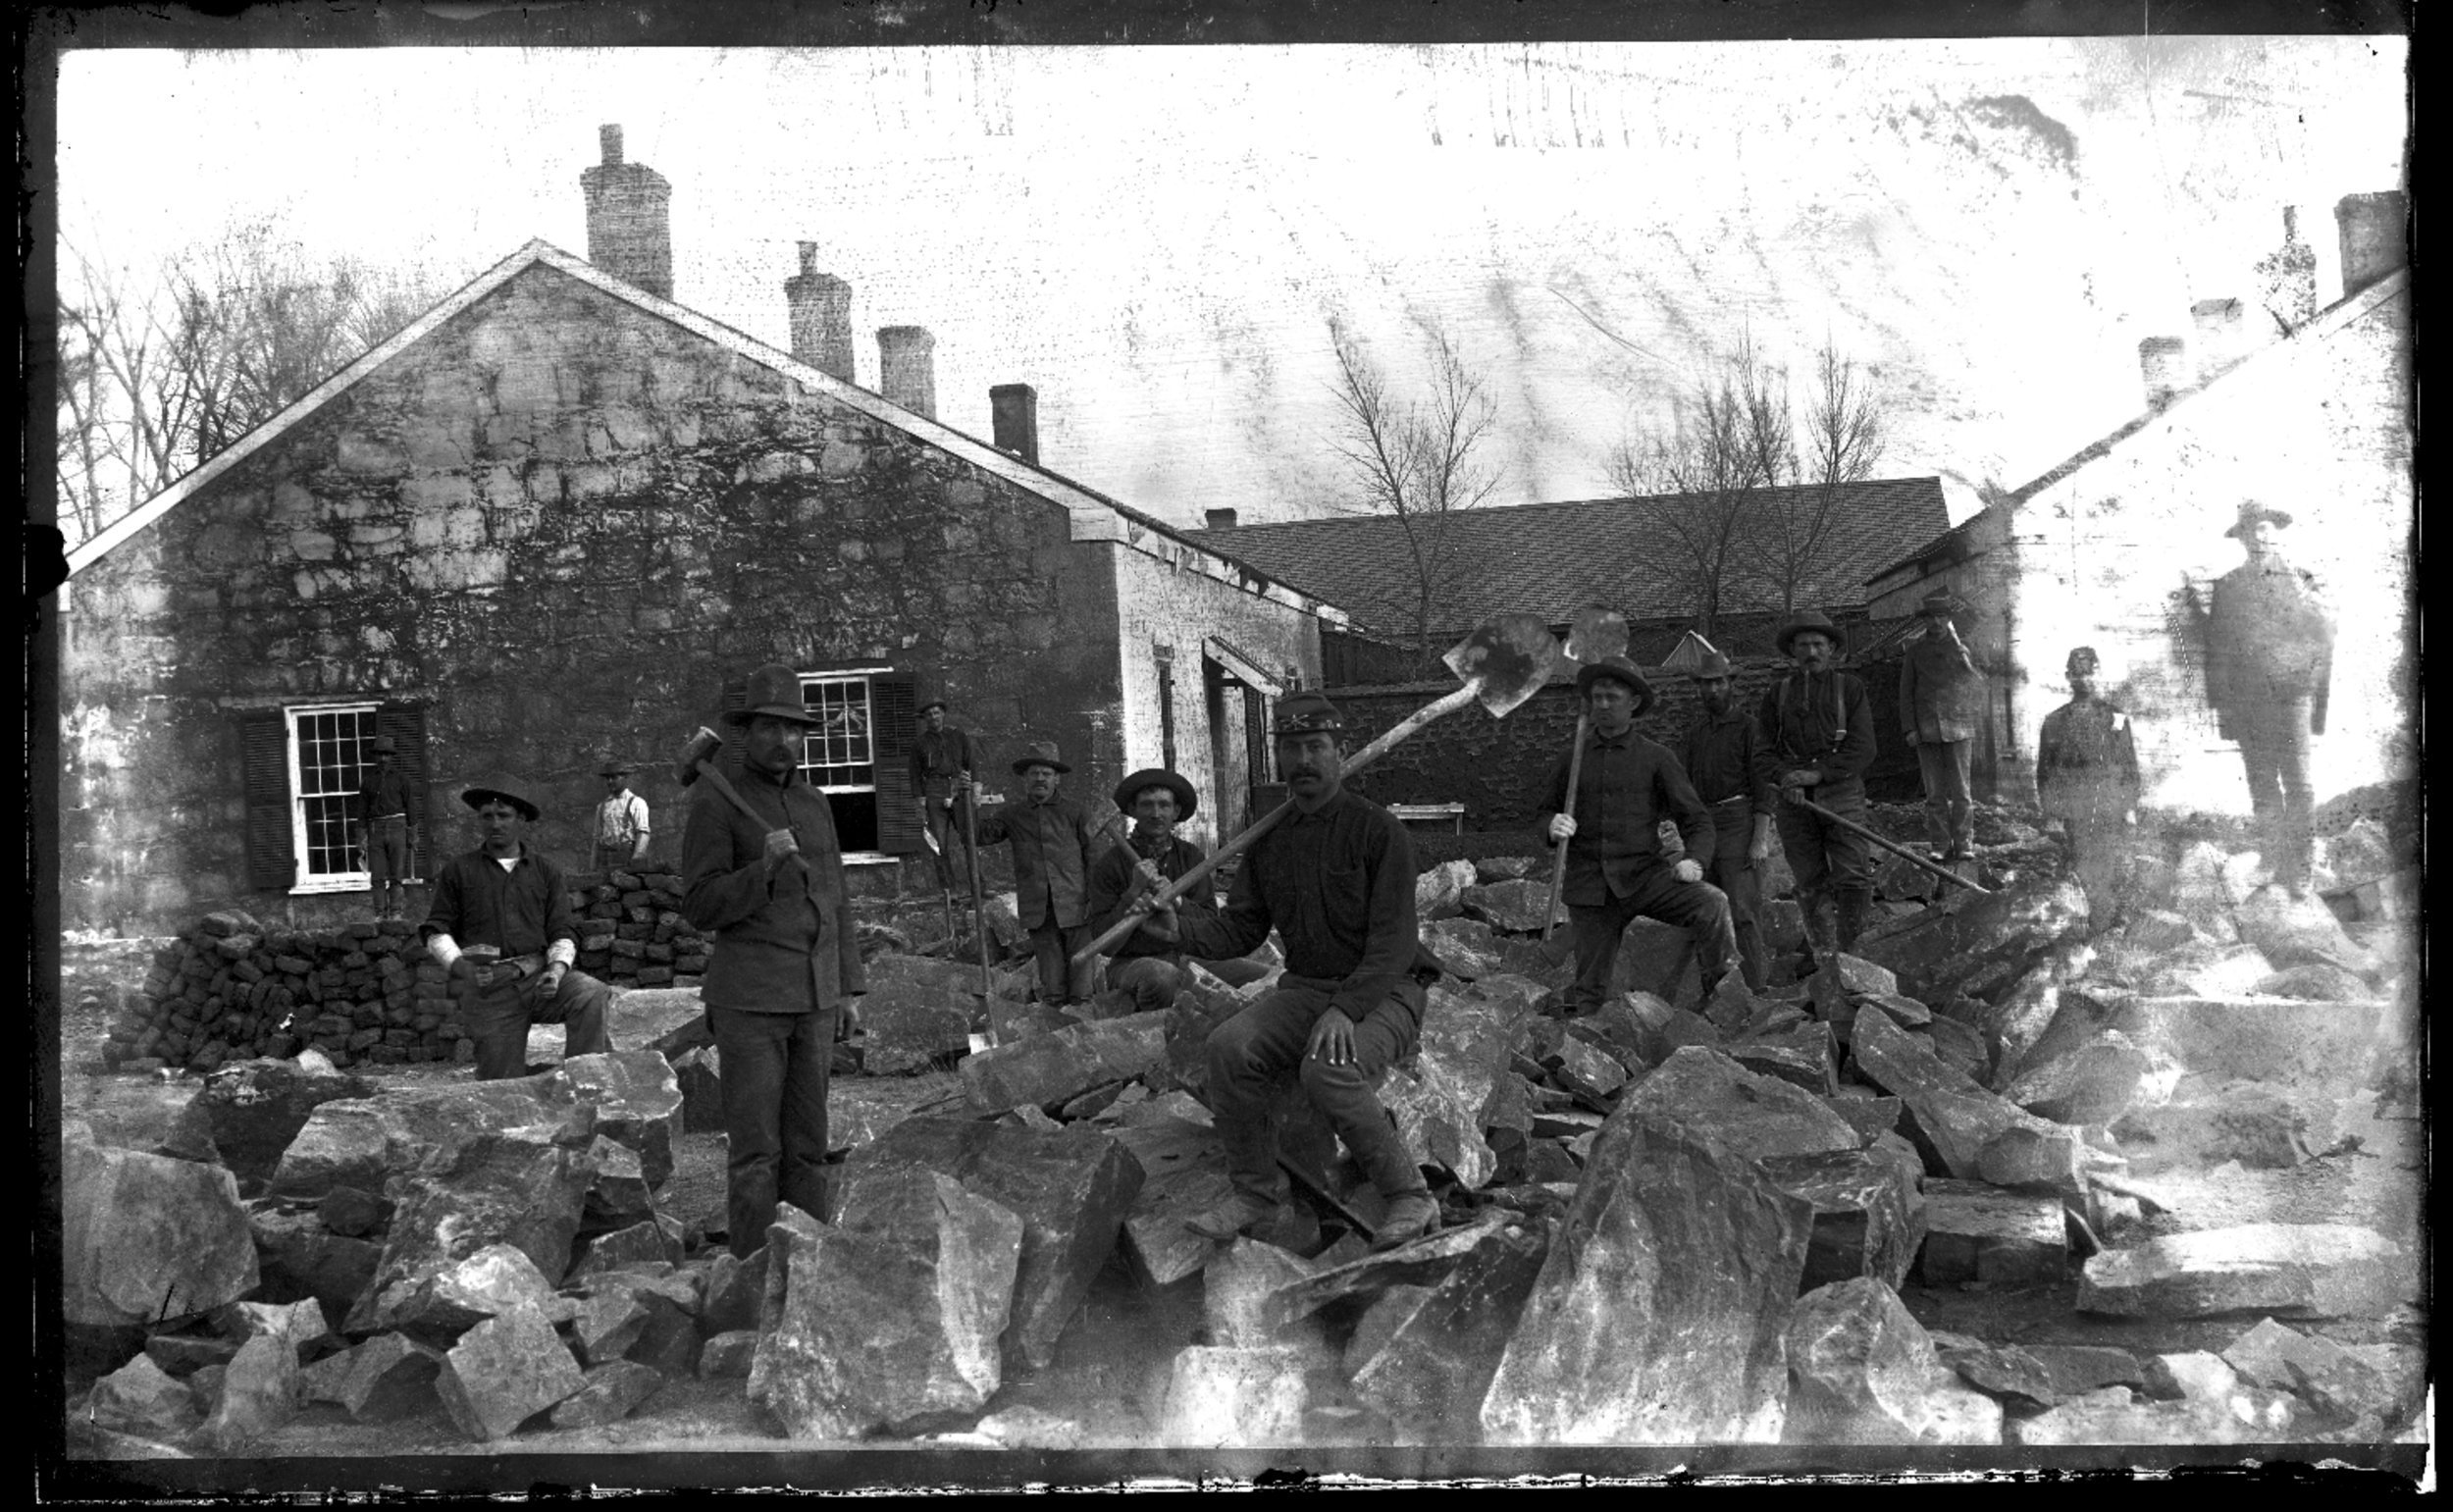 Fort Lyon and Fort Union - Unidentified soilders at Fort Lyon, Colorado. The soldiers are posed on top of a rock pile with shovels and hammers. Neg #9